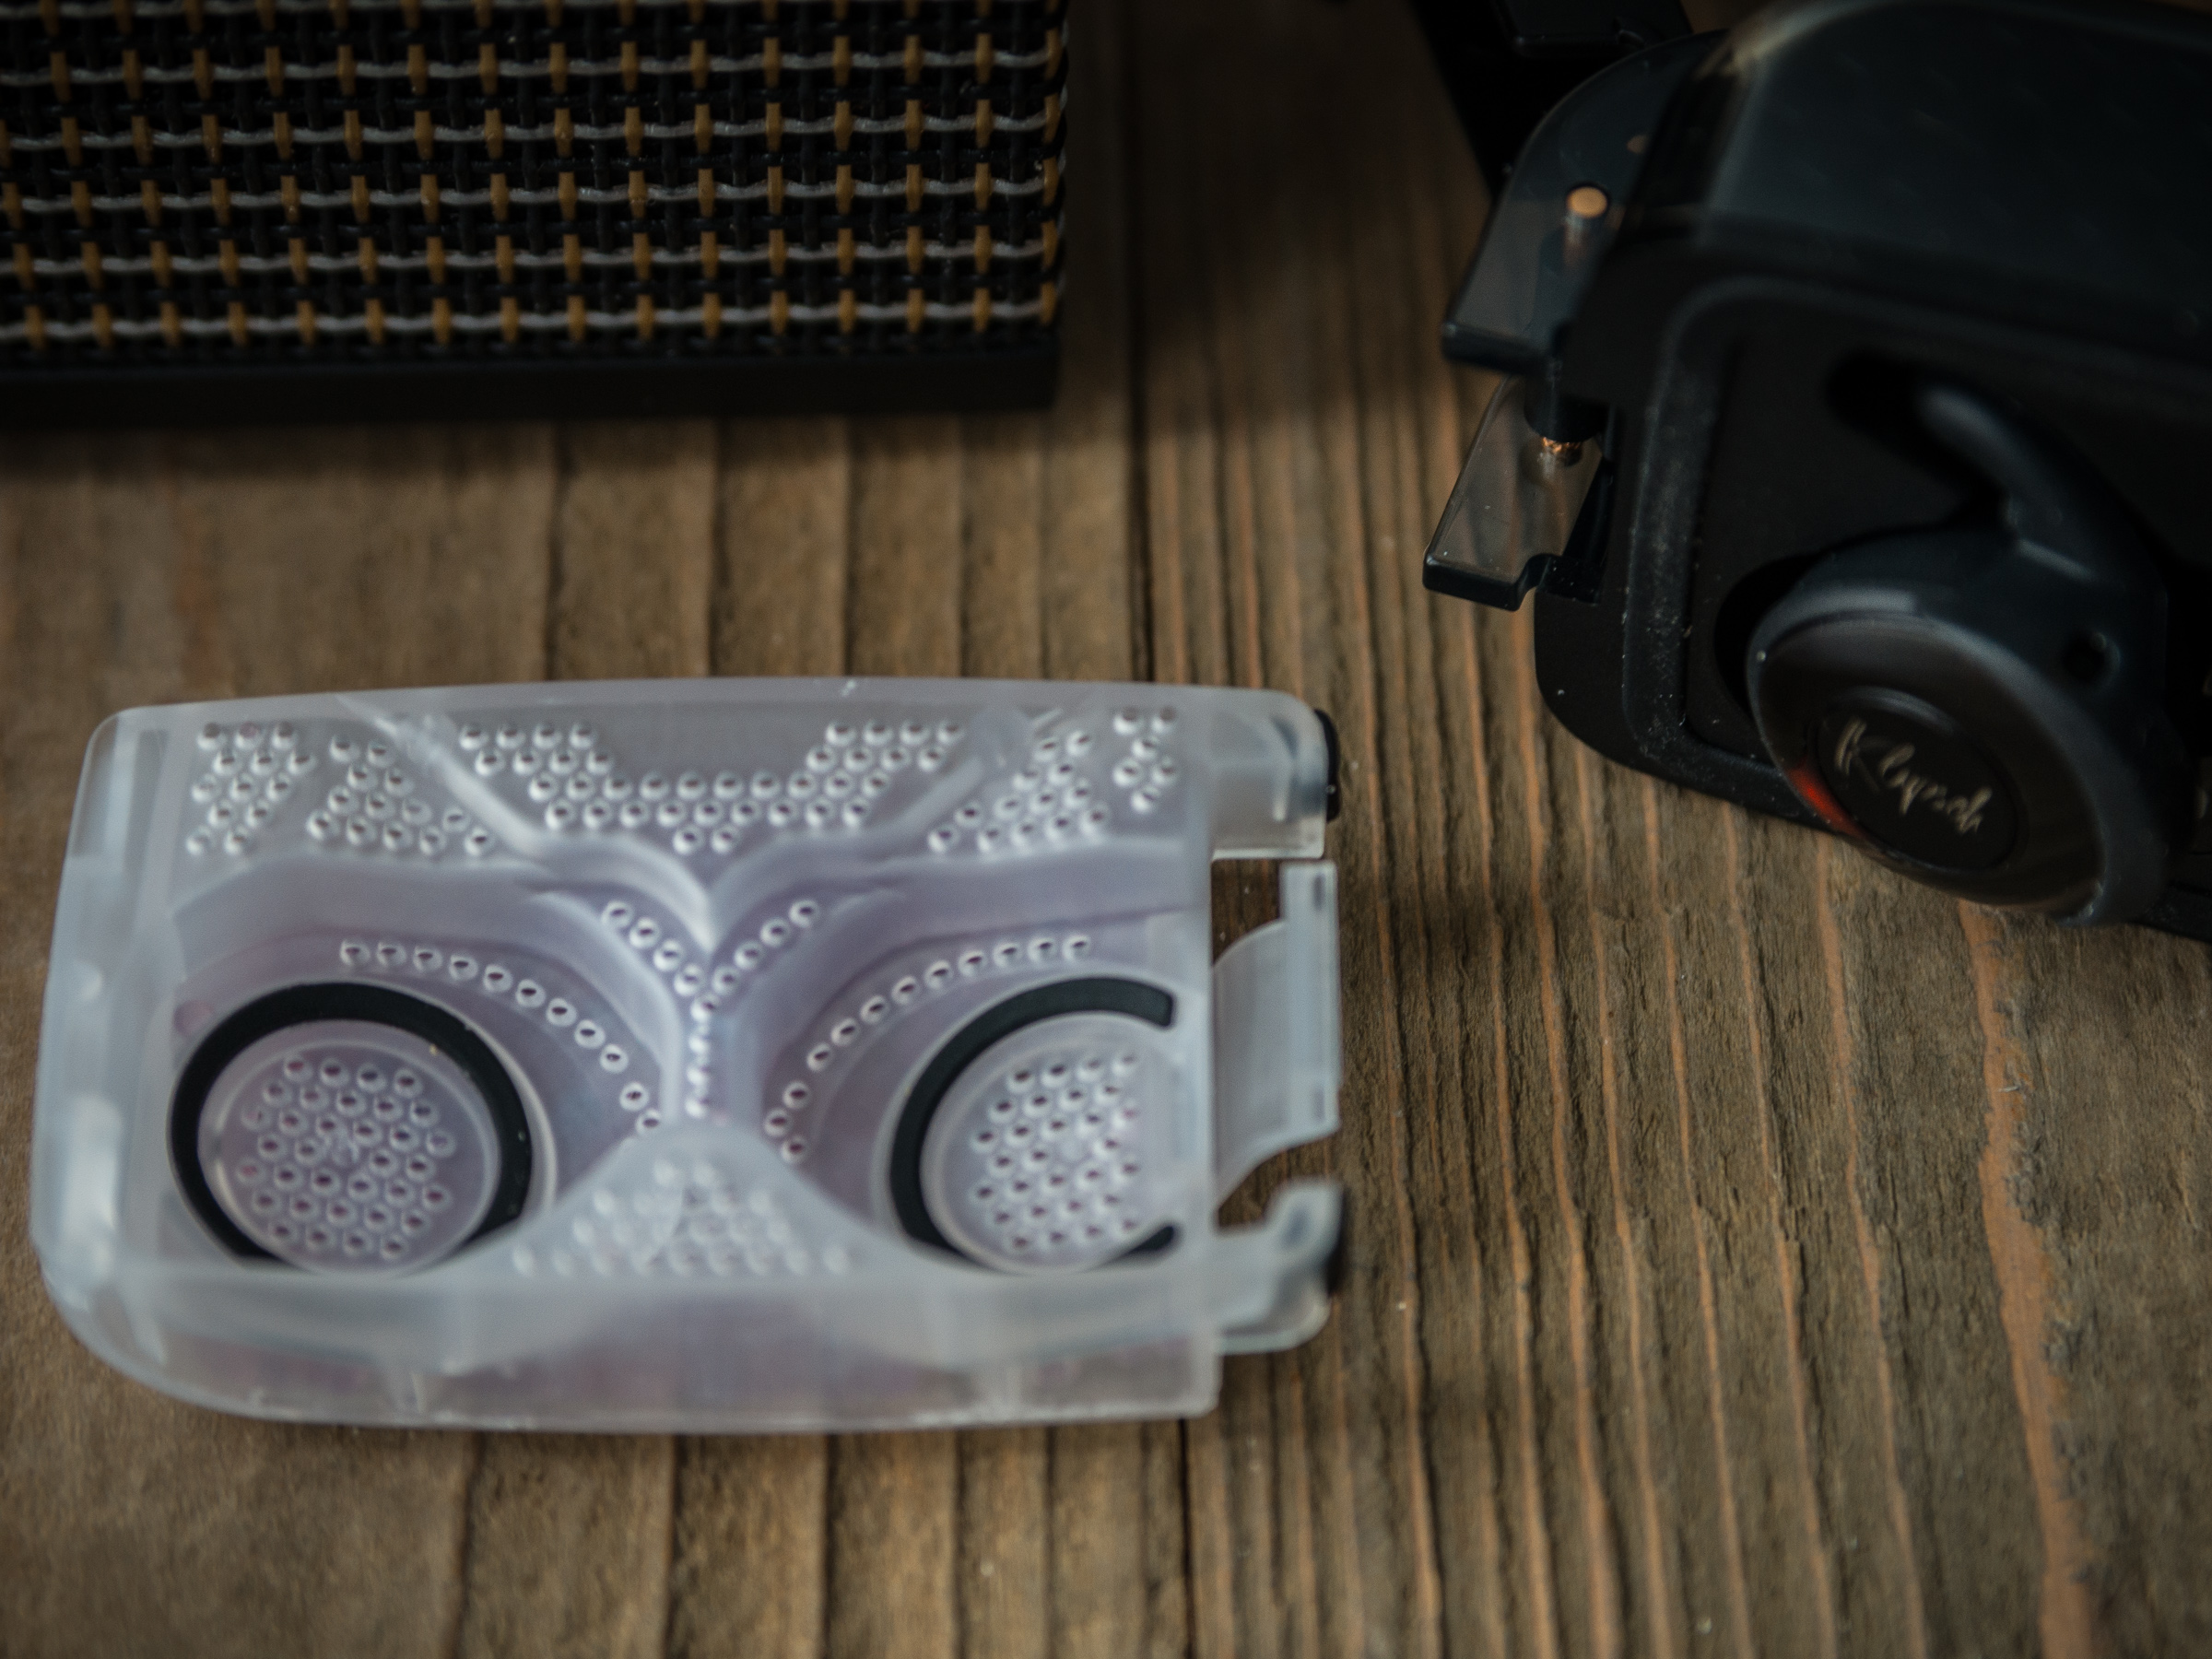 Clip D5 II True Wireless Sport features a unit with moisture absorbing crystals